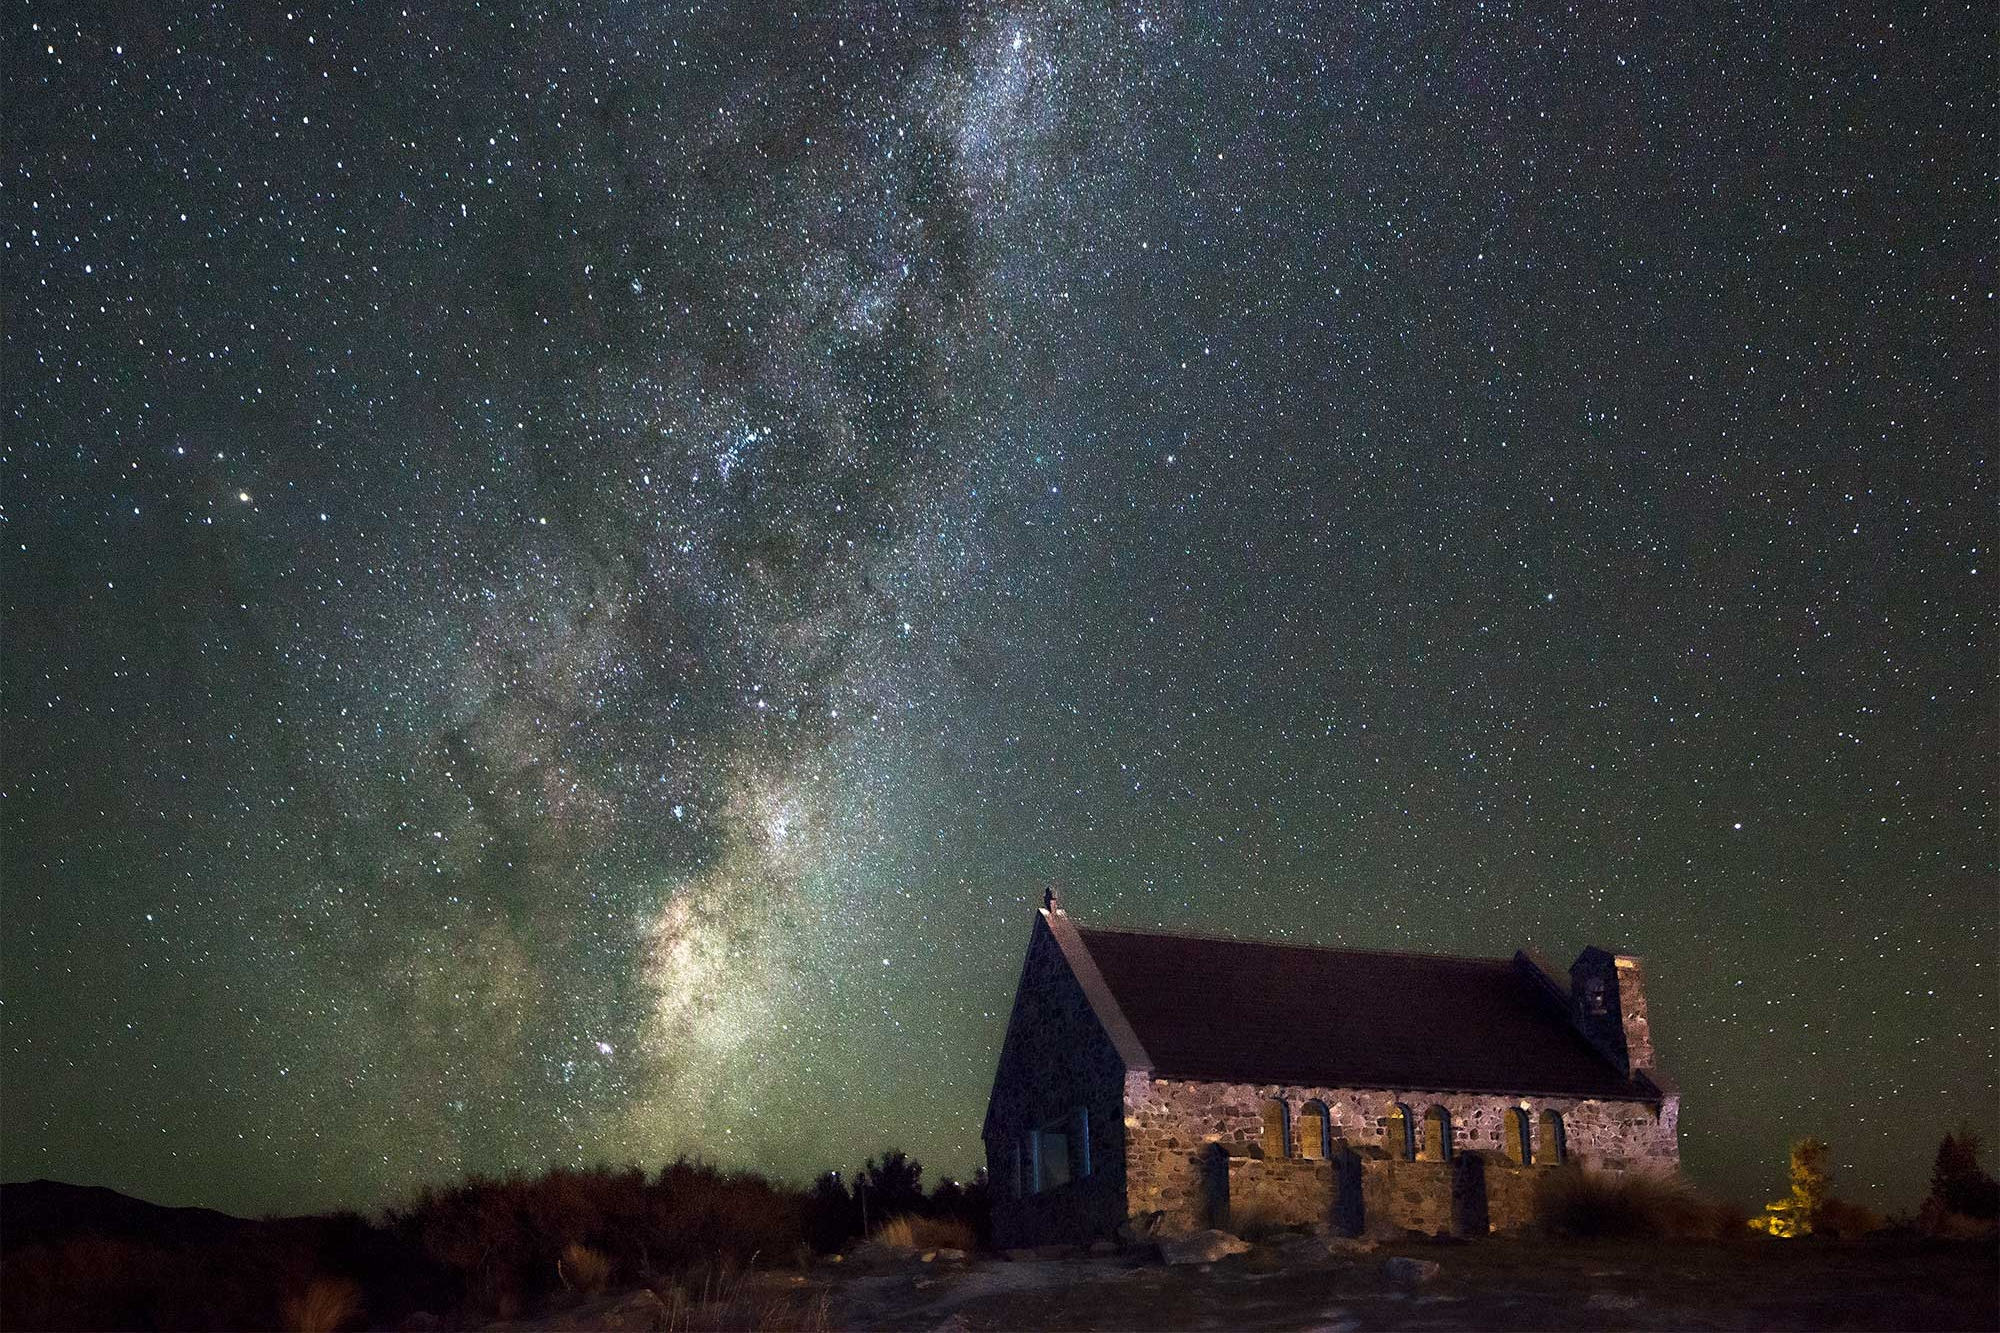 photography-workshop-new-zealand-tekapo-milkyway.jpg